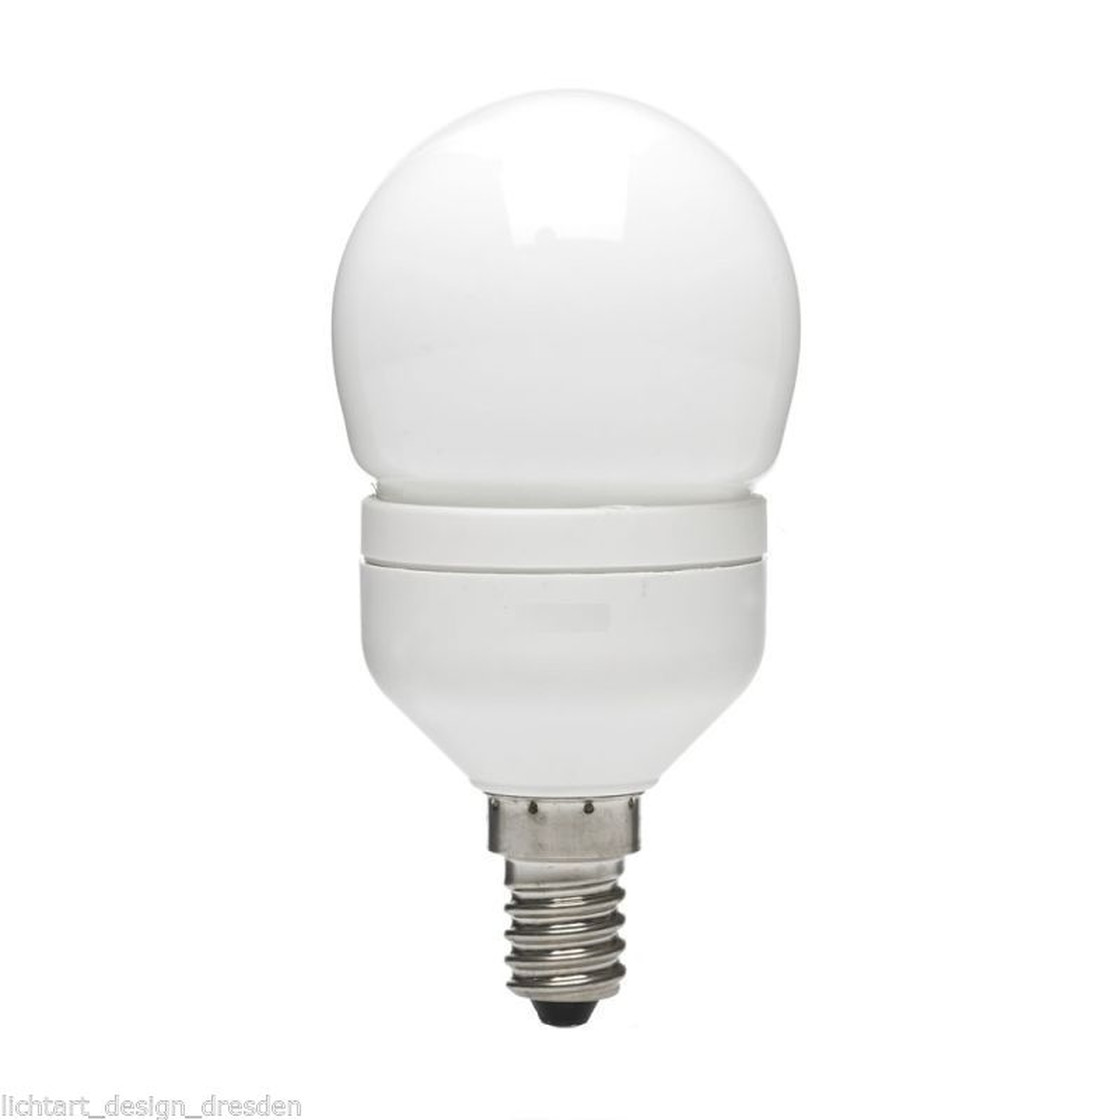 GE Lighting 45848 Leuchtmittel Energiesparlampe 8W Warmweiß E14 ESL